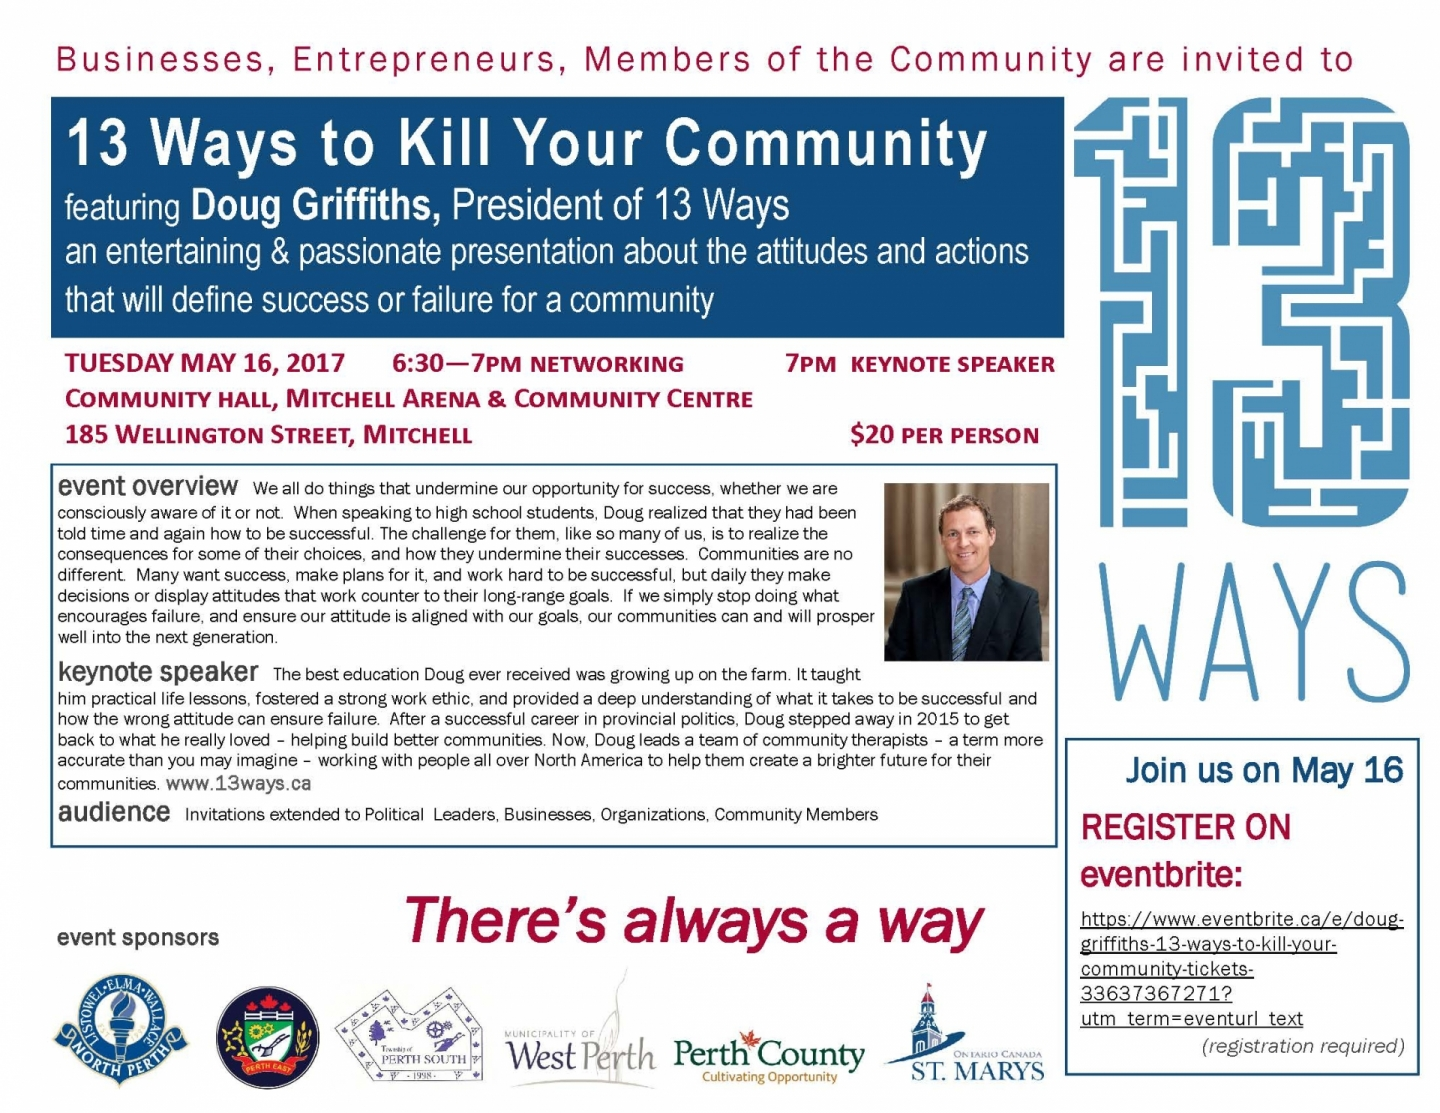 13 ways to kill a community workshop